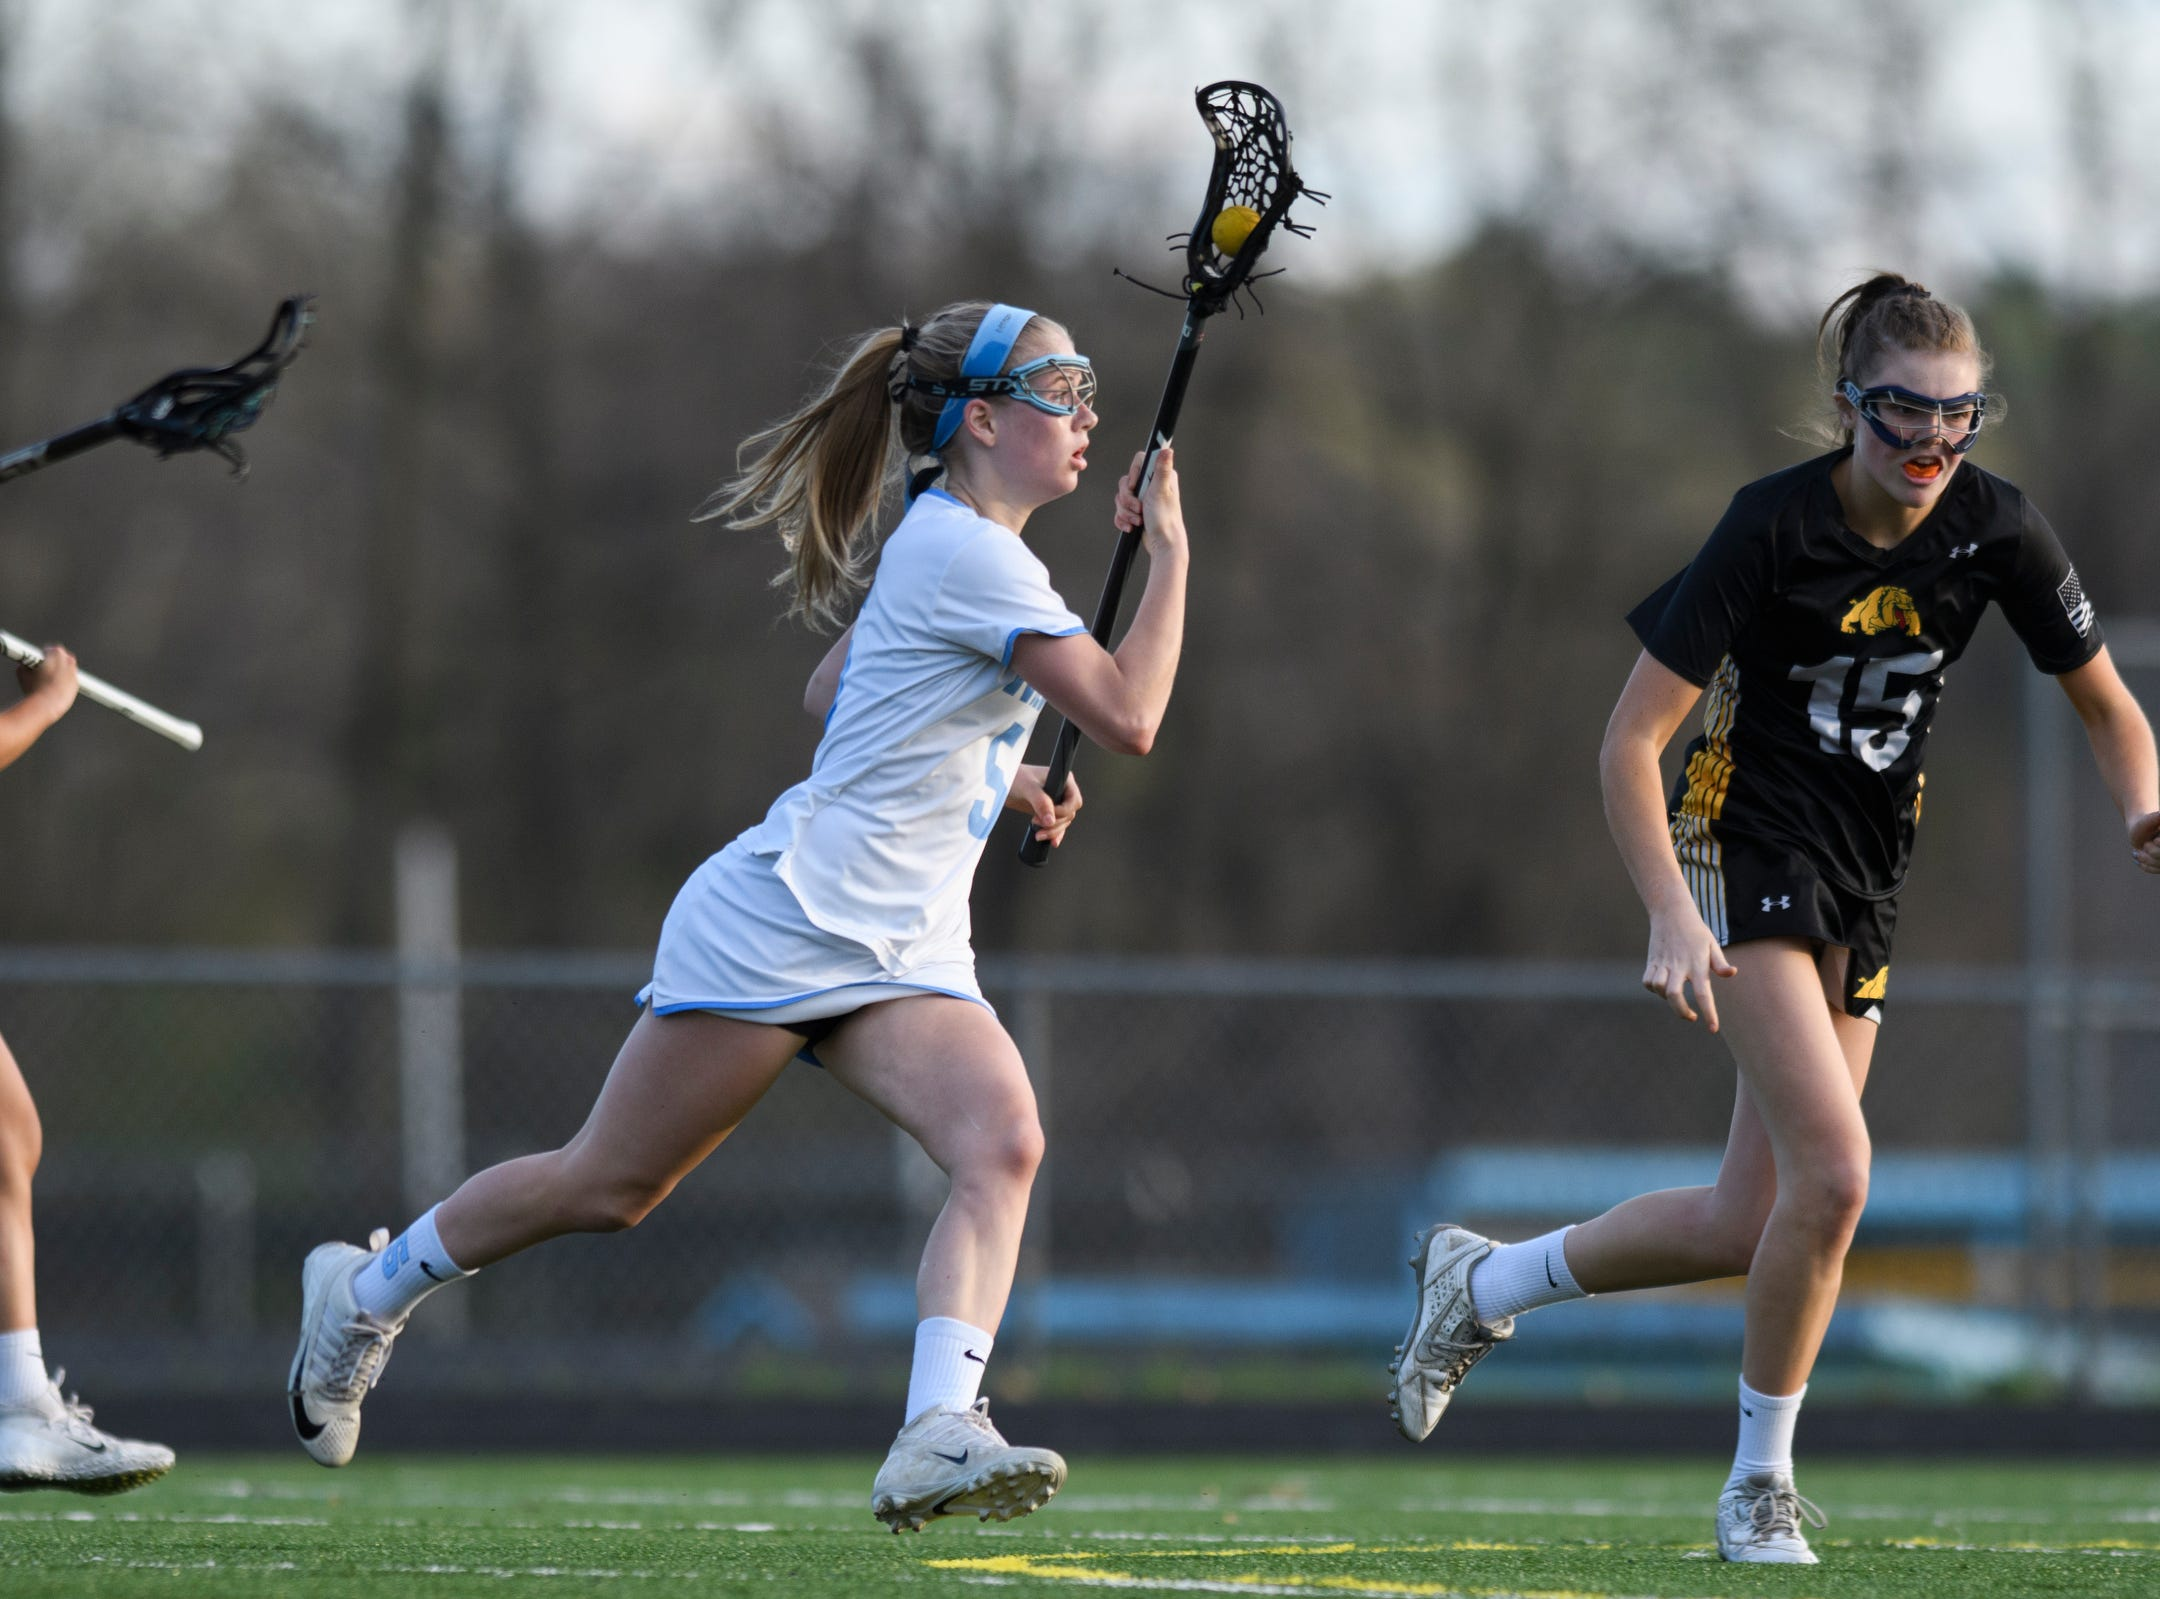 South Burlington's Lilly Truchon (15) runs down the field with the ball during the high school girls lacrosse game between Burr and Burton Bulldogs and the South Burlington Wolves at Munson Field on Monday afternoon May 6, 2019 in South Burlington, Vermont.